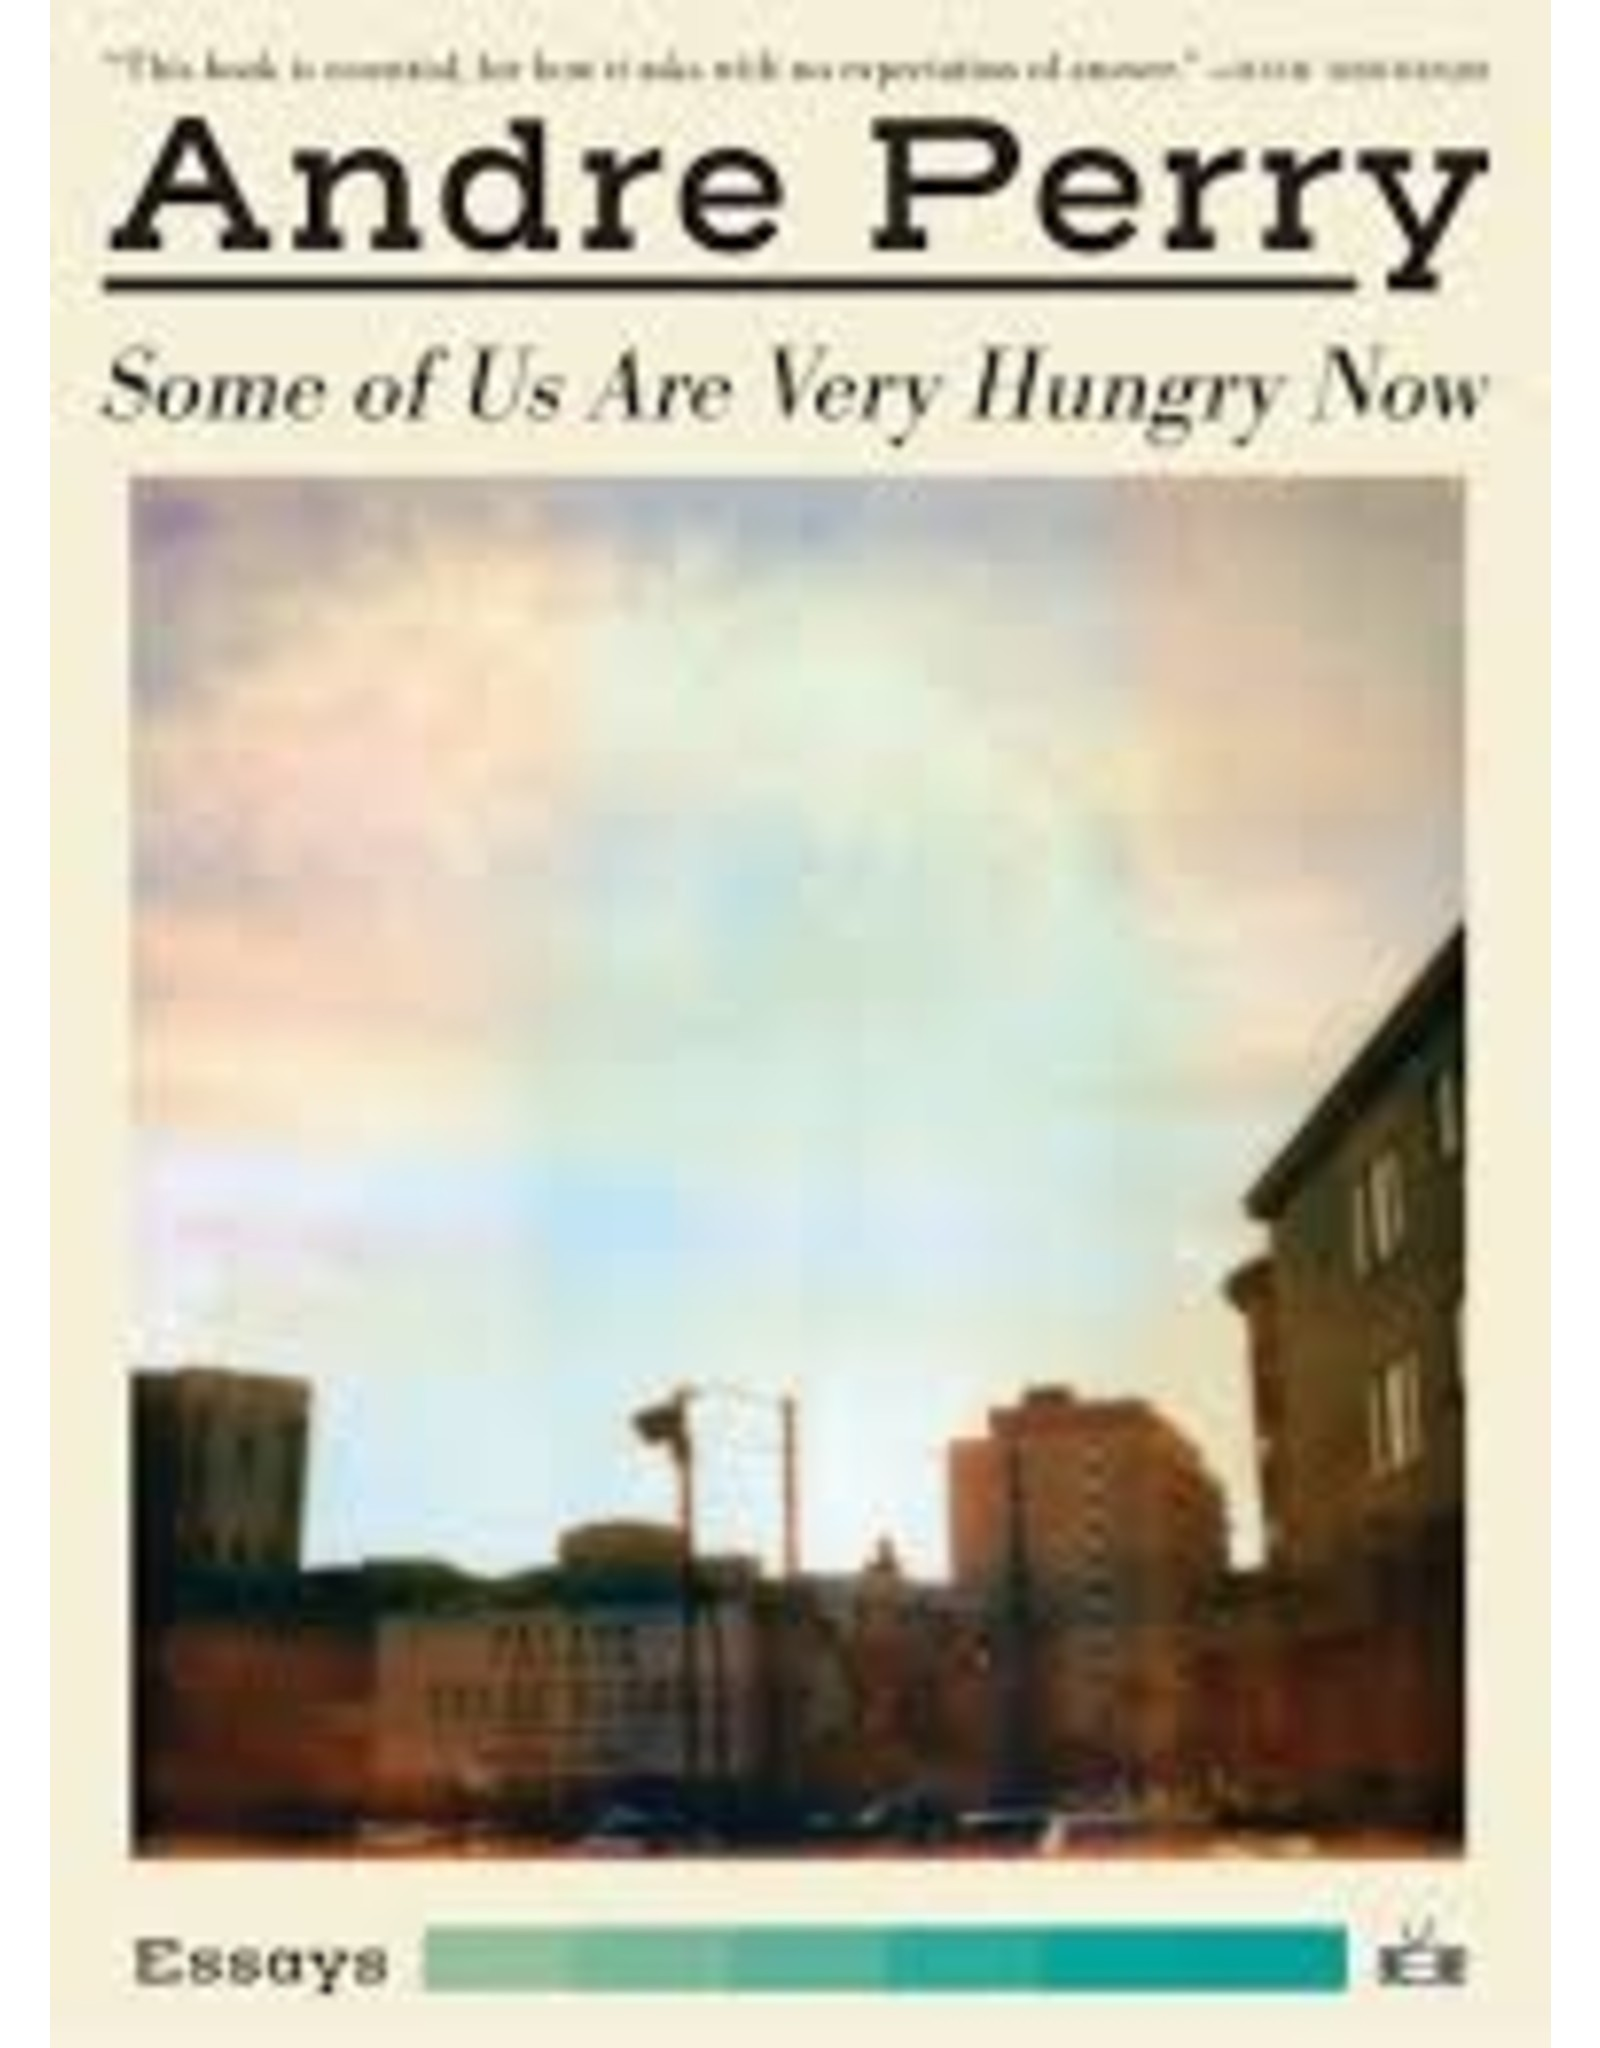 Books Some of Us are Very Hungry Now by Andre Perry